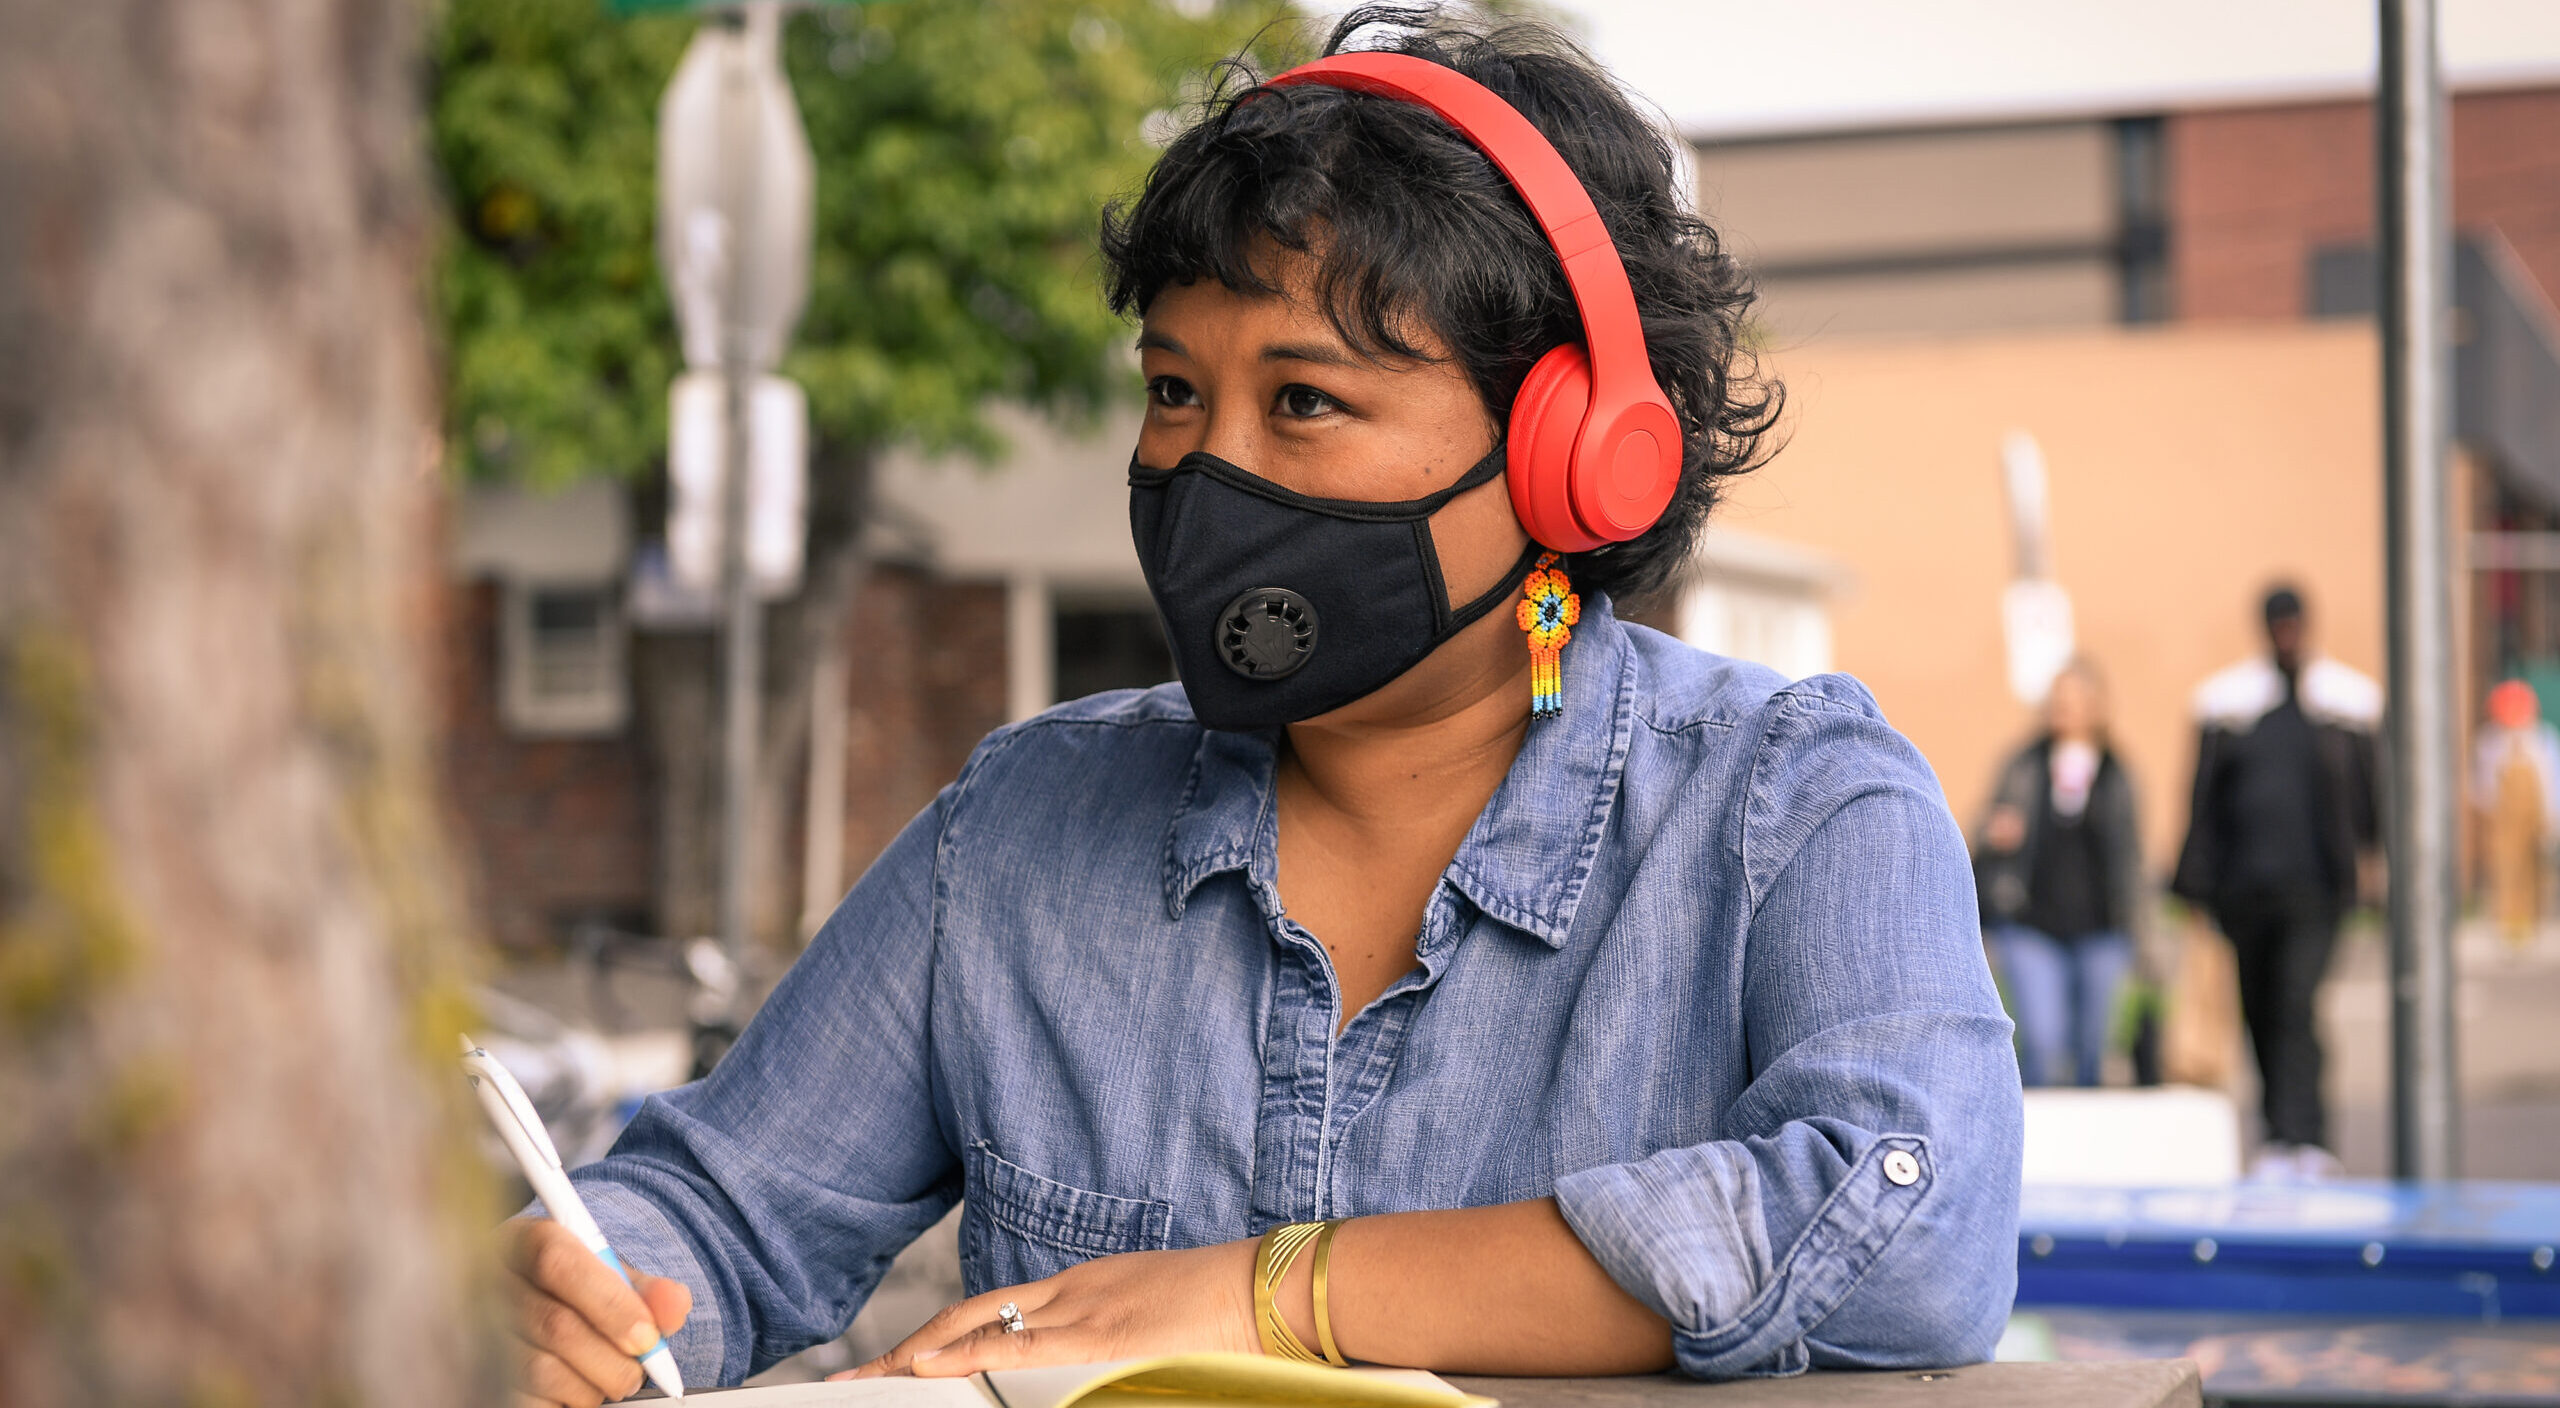 Close-up of a Filipinx woman with a filtering face mask, sitting at a table with notebook and pen. She has colorful flower earrings and headphones on while looking into the distance.